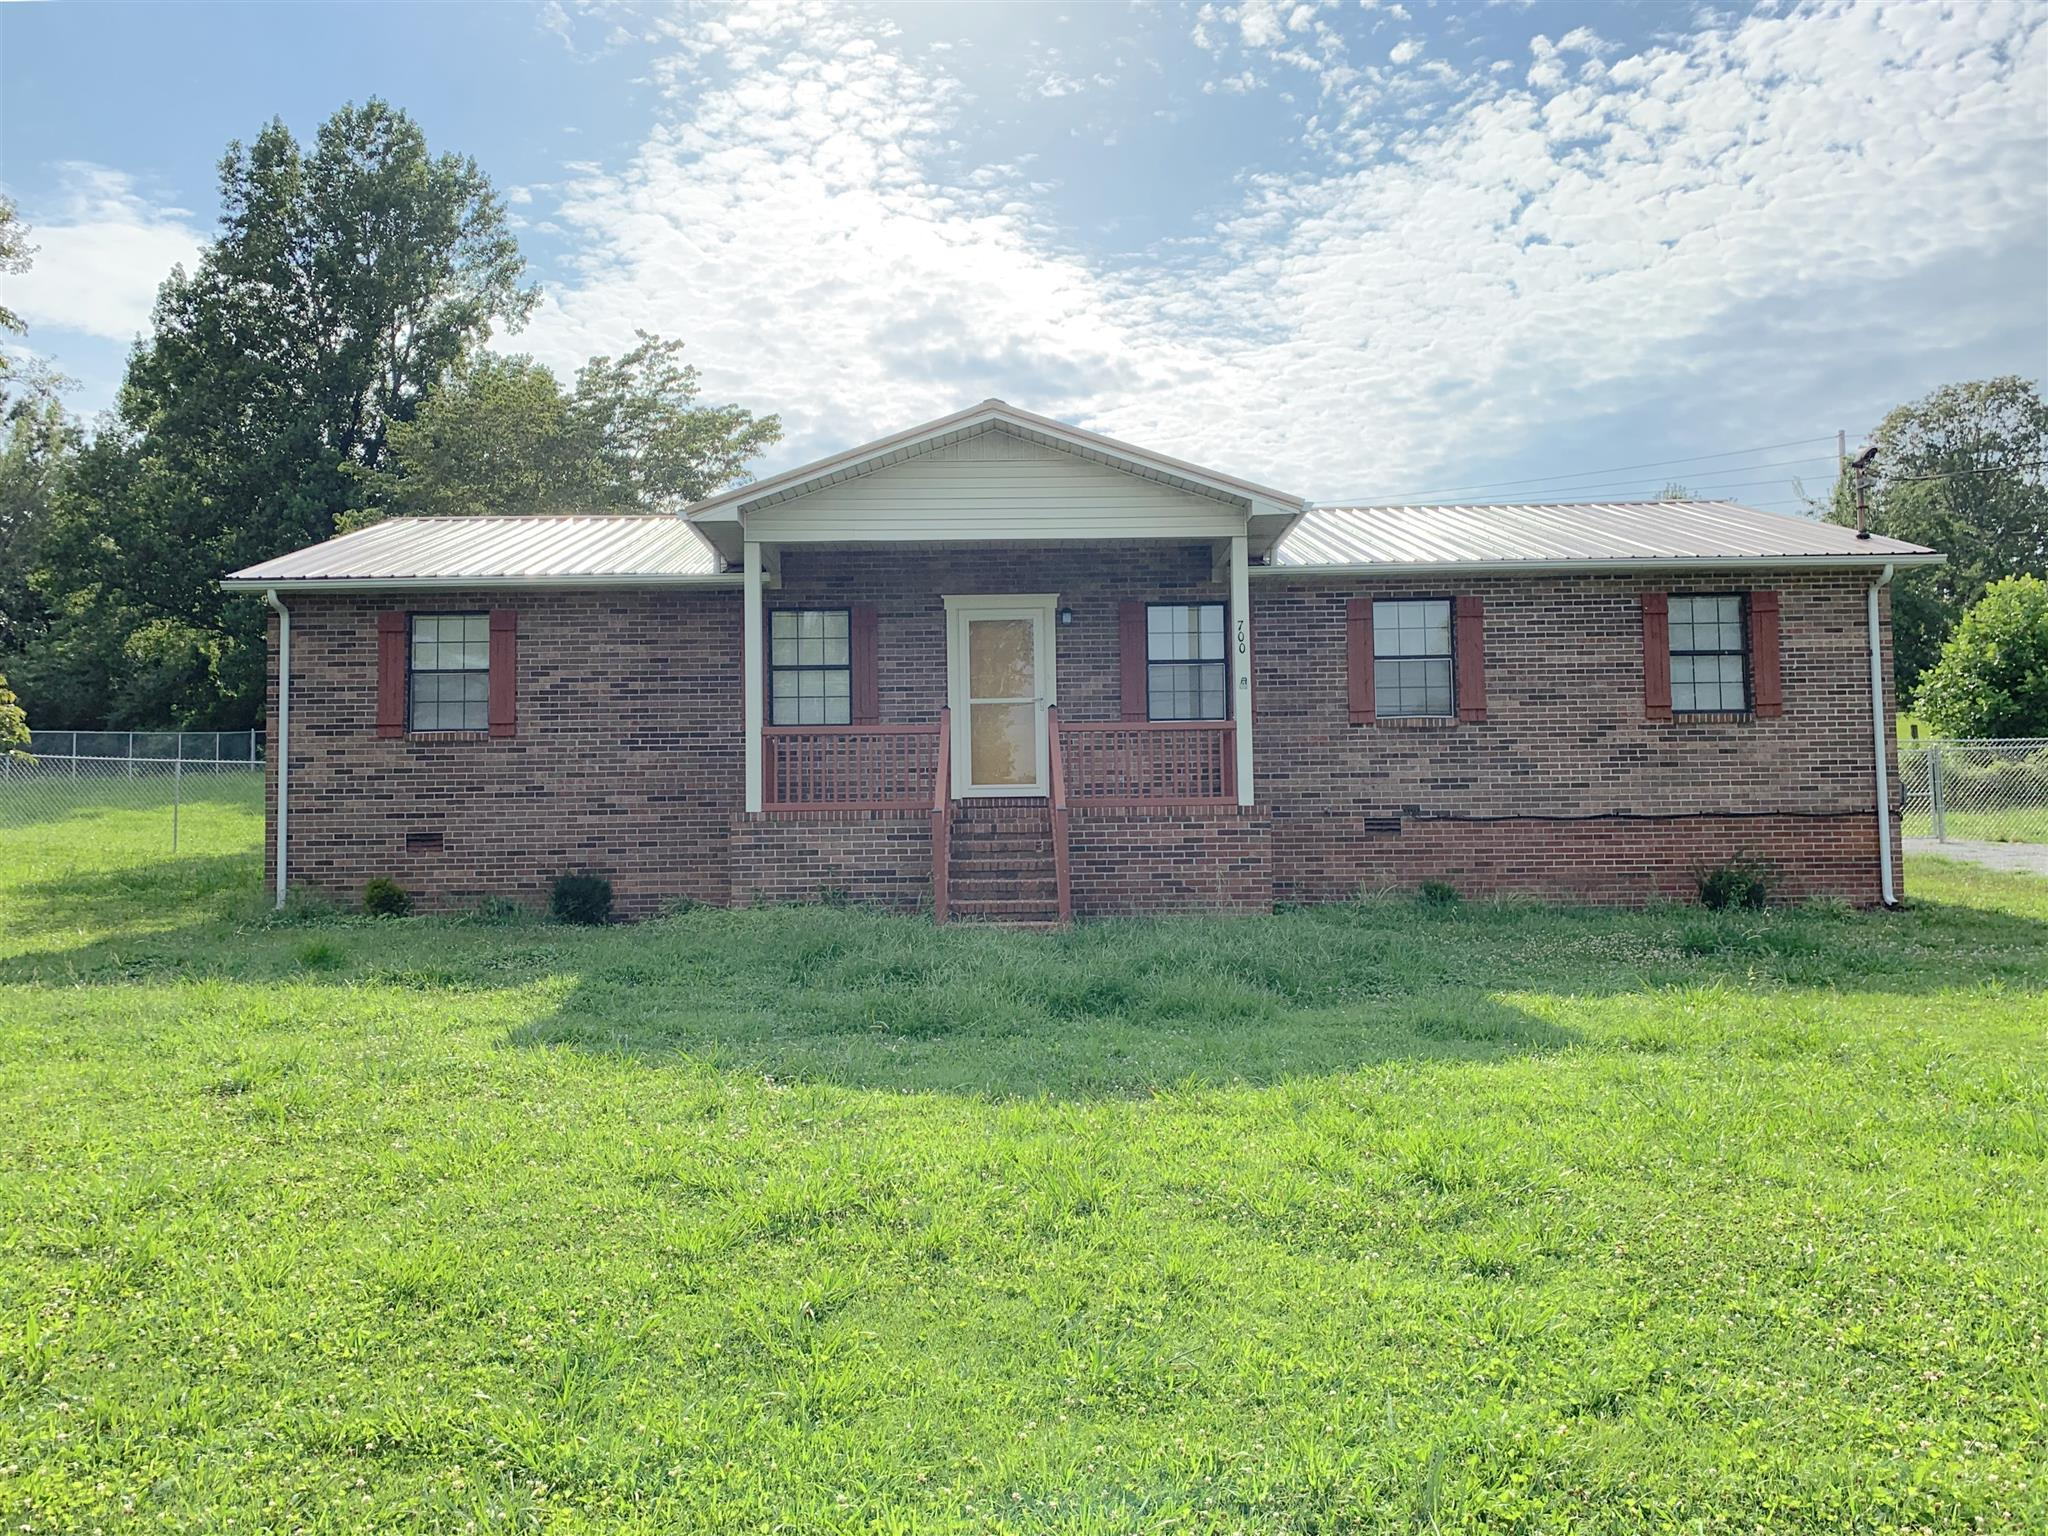 700 Sun Valley Road, Cookeville, TN 38501 - Cookeville, TN real estate listing